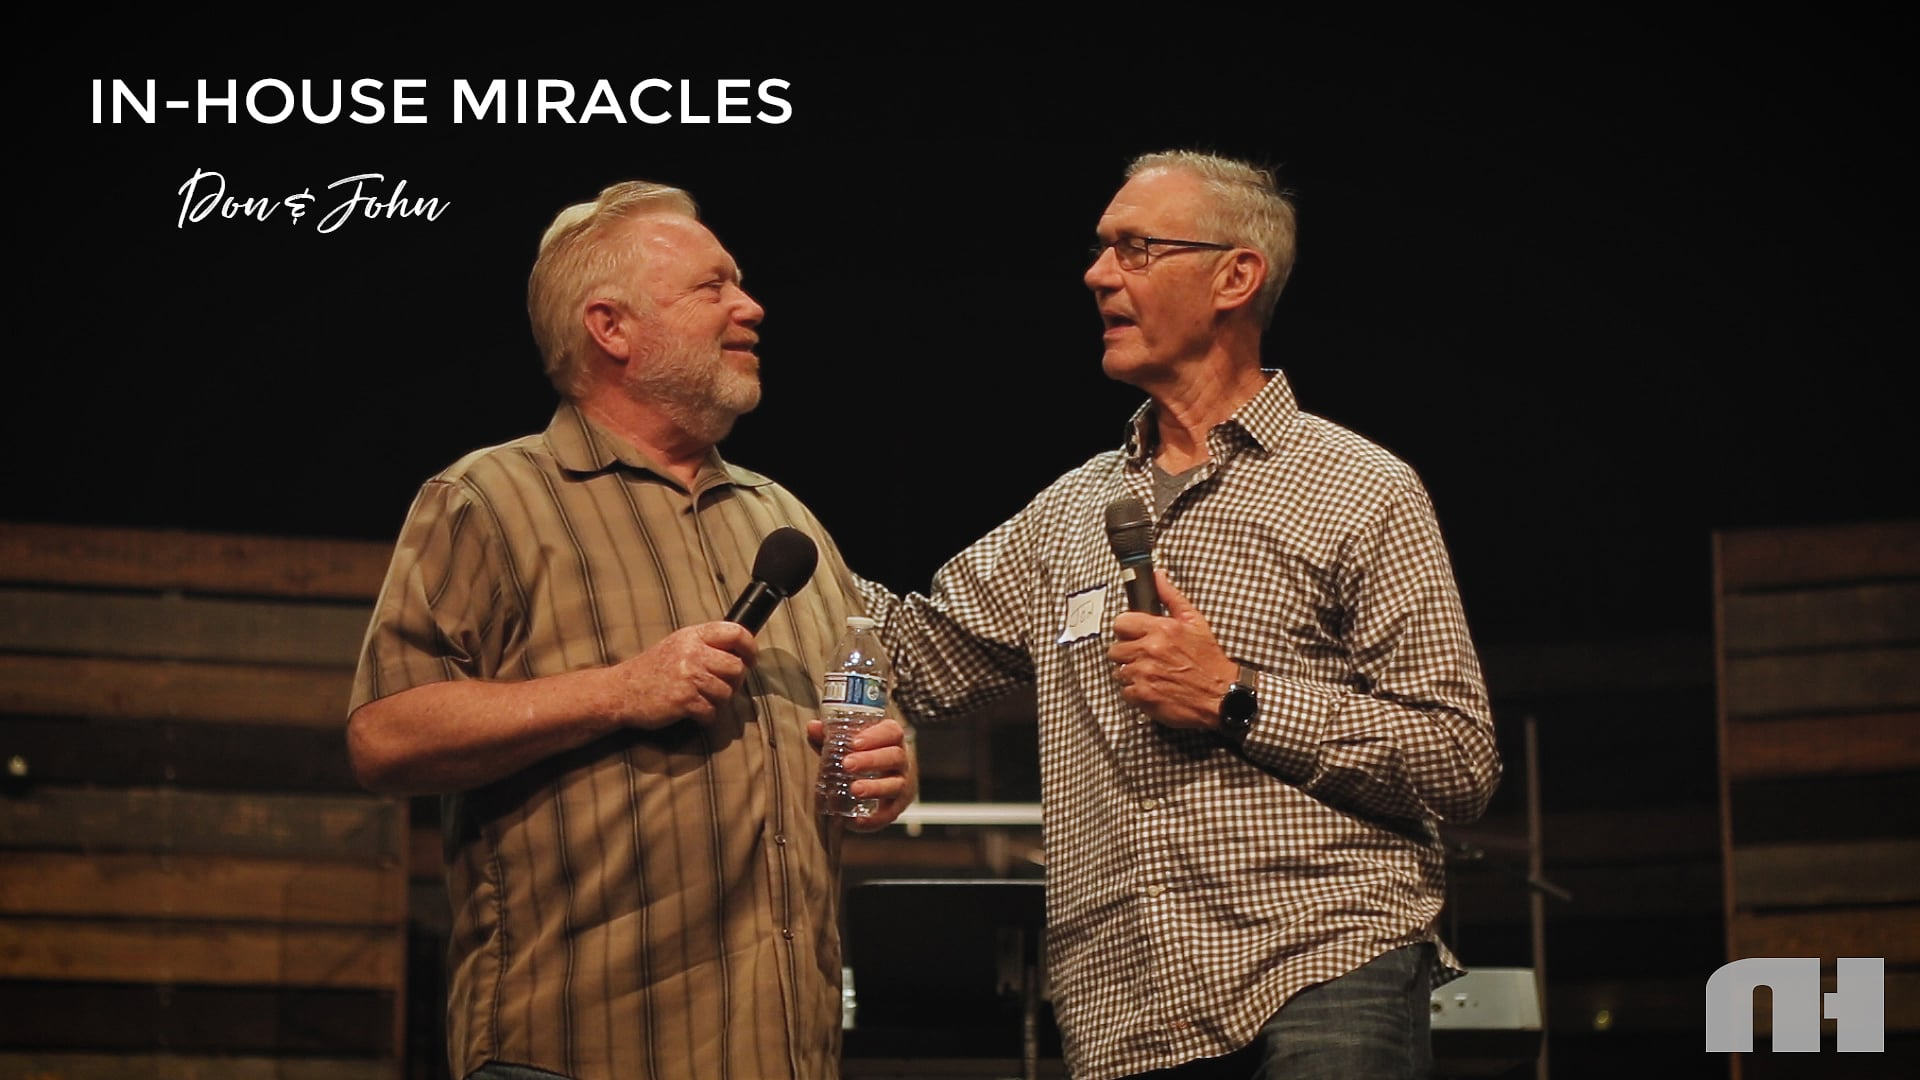 In-House Miracles: Don and Jon